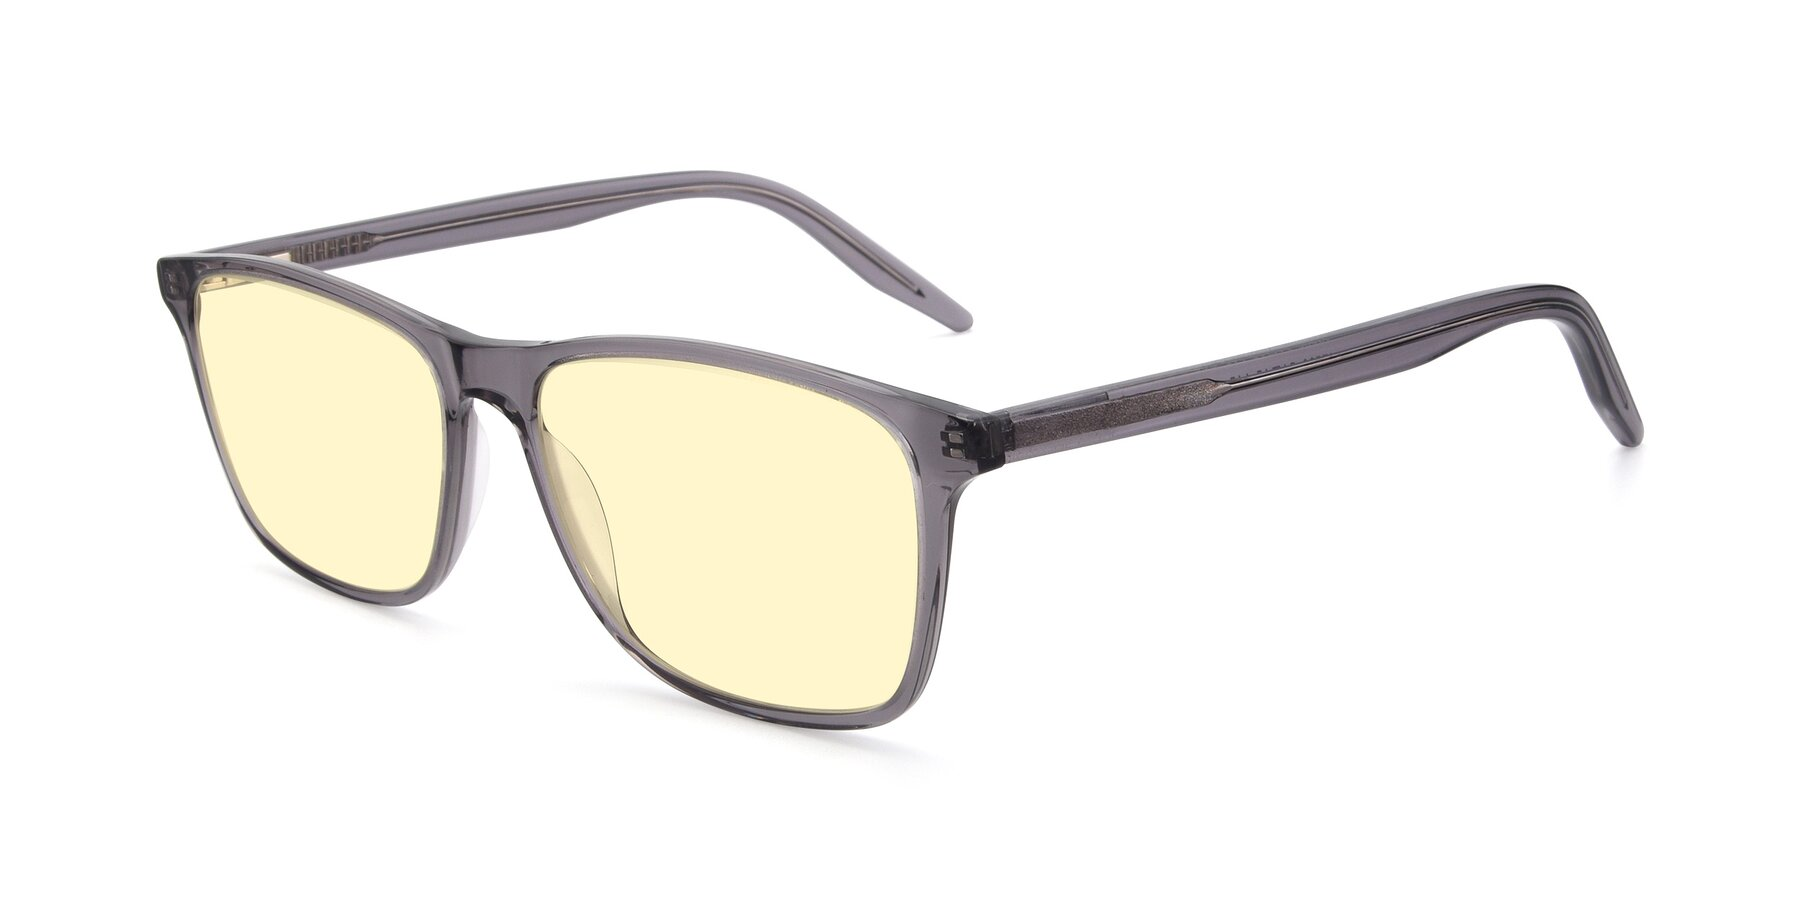 Angle of 17500 in Transparent Grey with Light Yellow Tinted Lenses